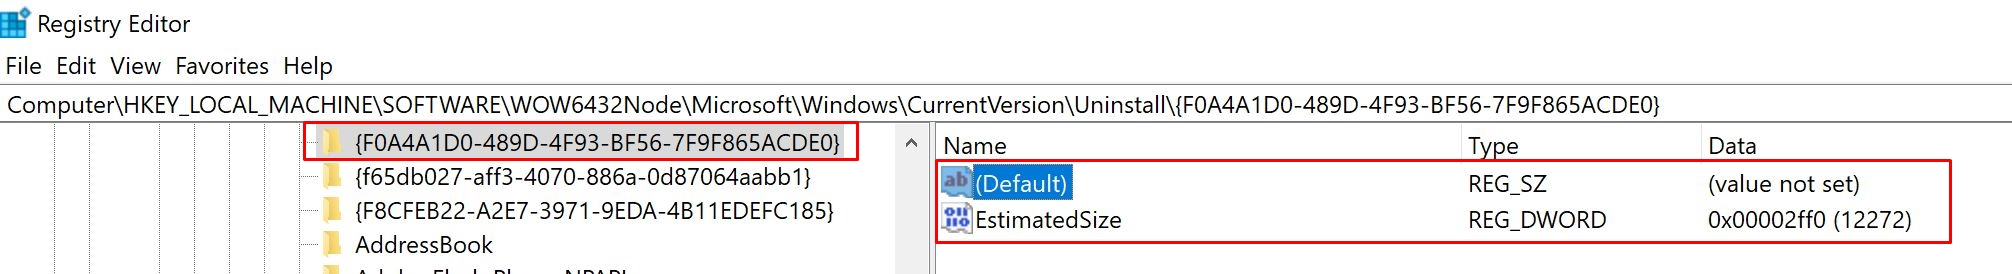 delete if only contains EstimatedSize and (Default)